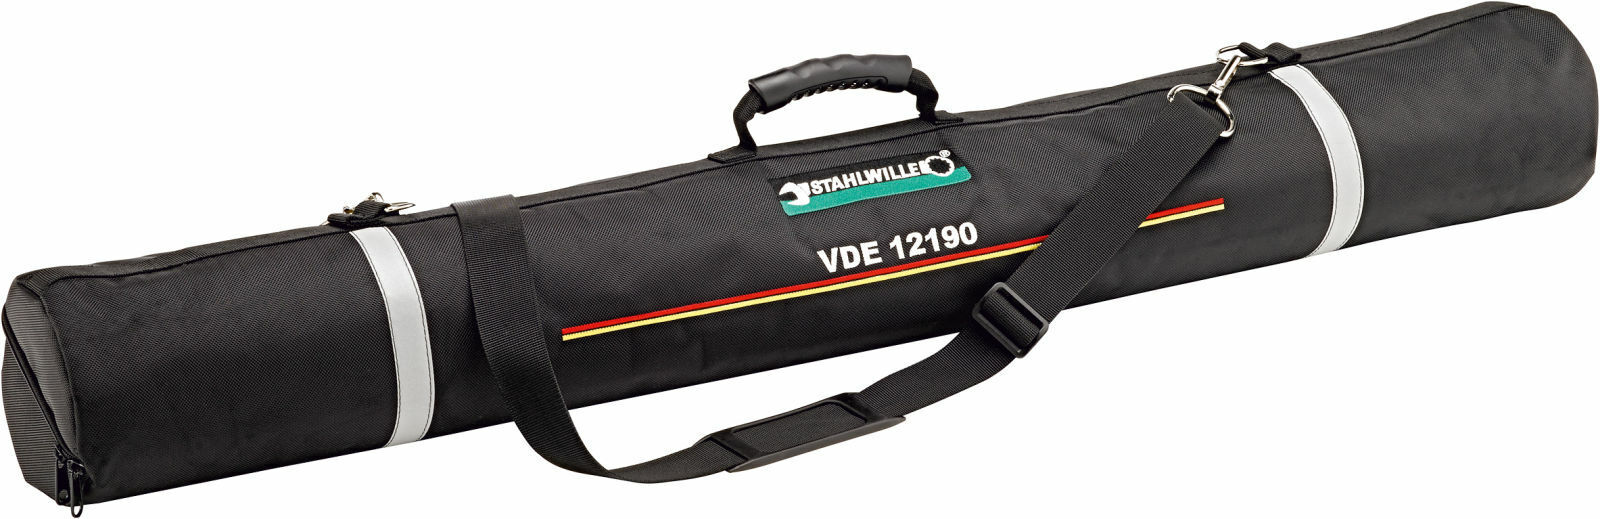 Stahlwille VDE BAG WITH CARRYING STRAPS 77030701